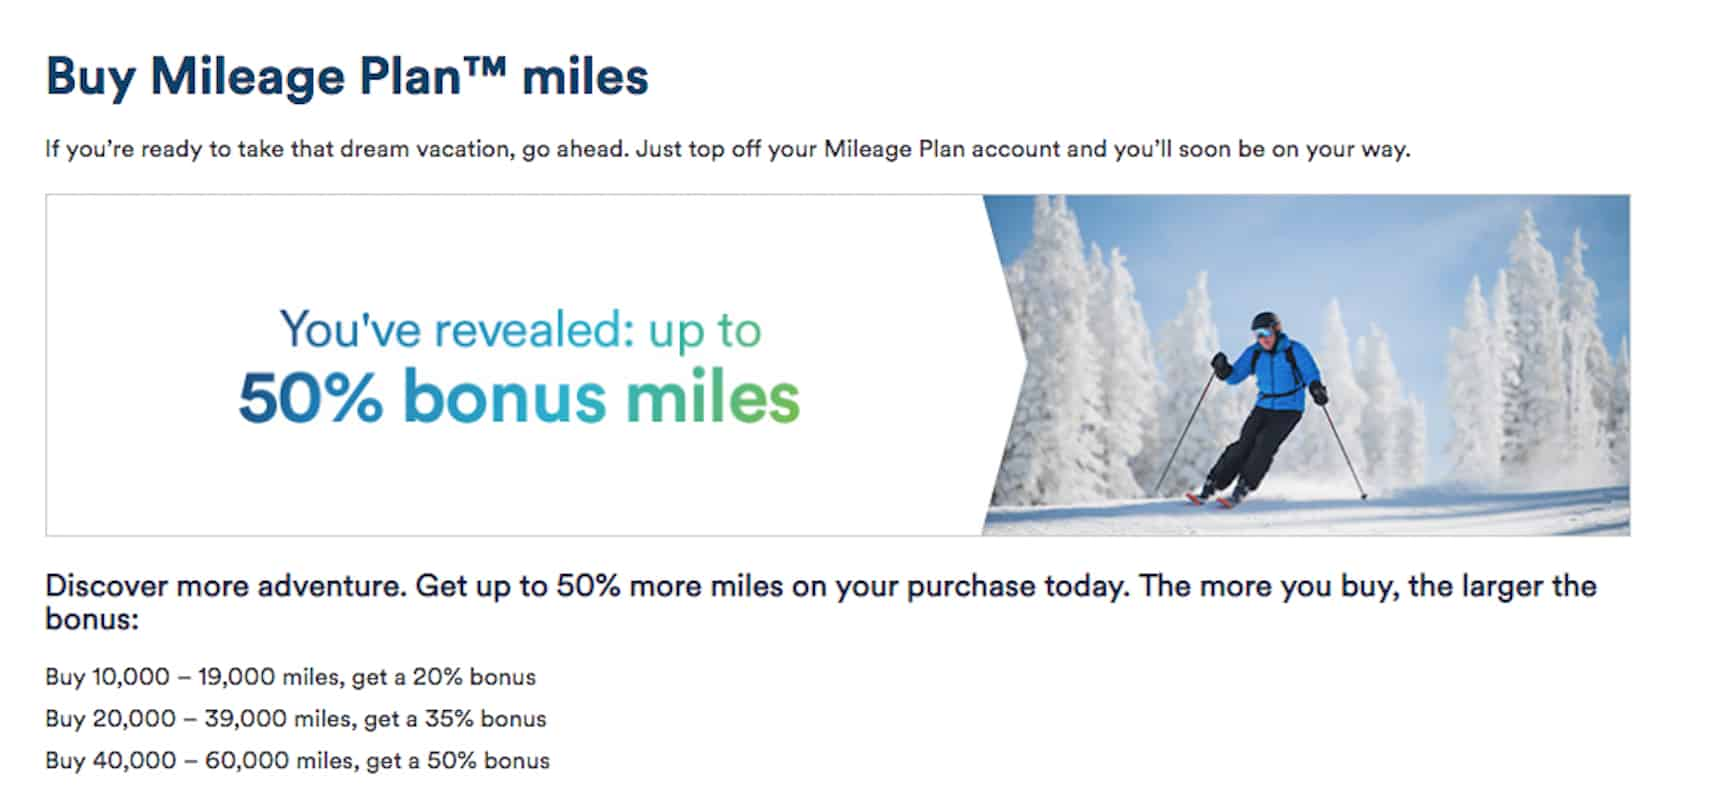 Your bonus will be either 20%, 35%, or 50%. You have to sign into your Alaska Airlines Mileage Plan account to see how much you're offered for a mystery bonus.